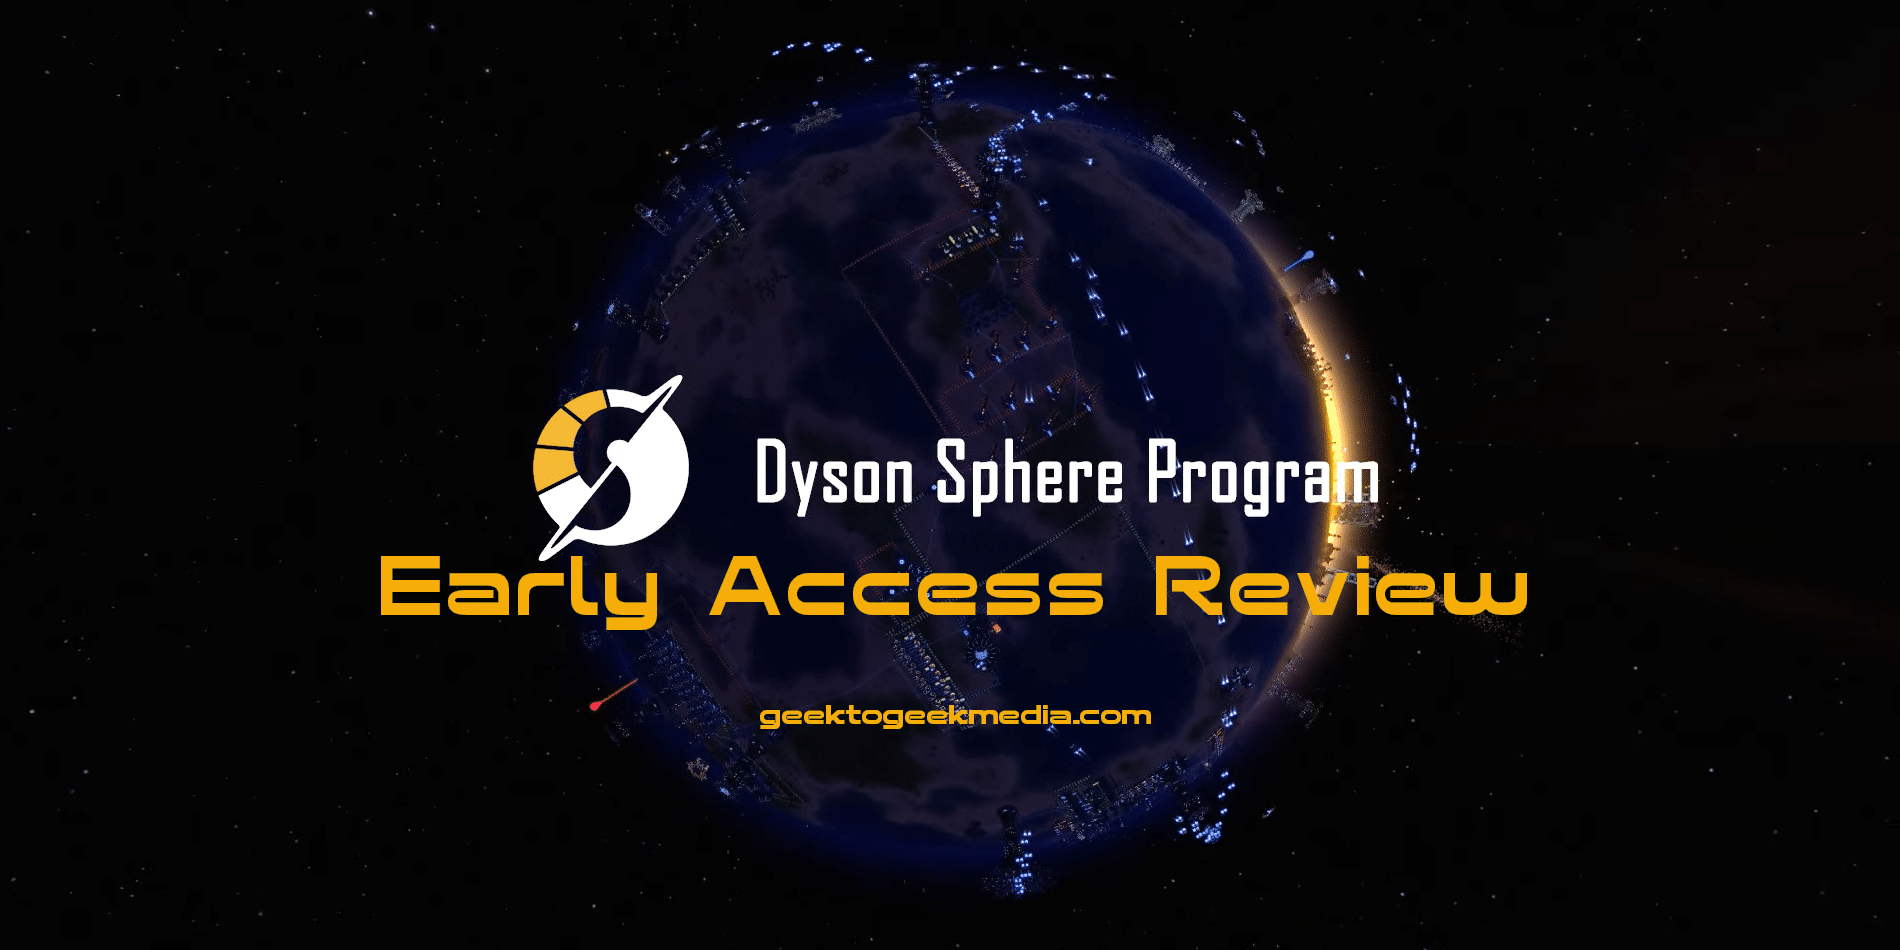 dyson sphere program early access review